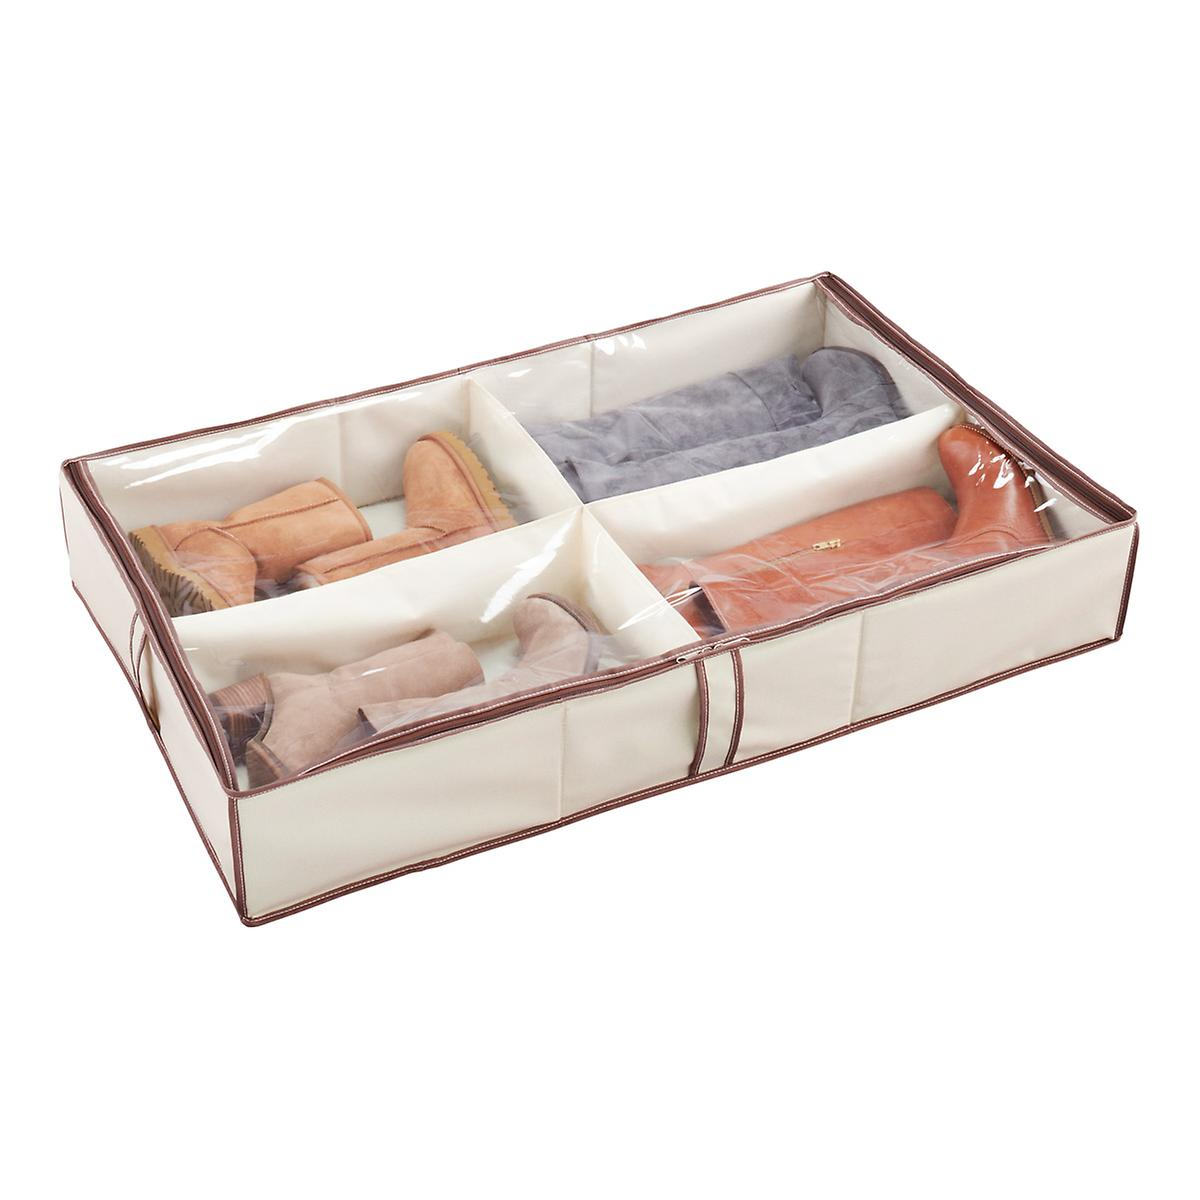 4 Compartment Underbed Shoe Organizer The Container Store